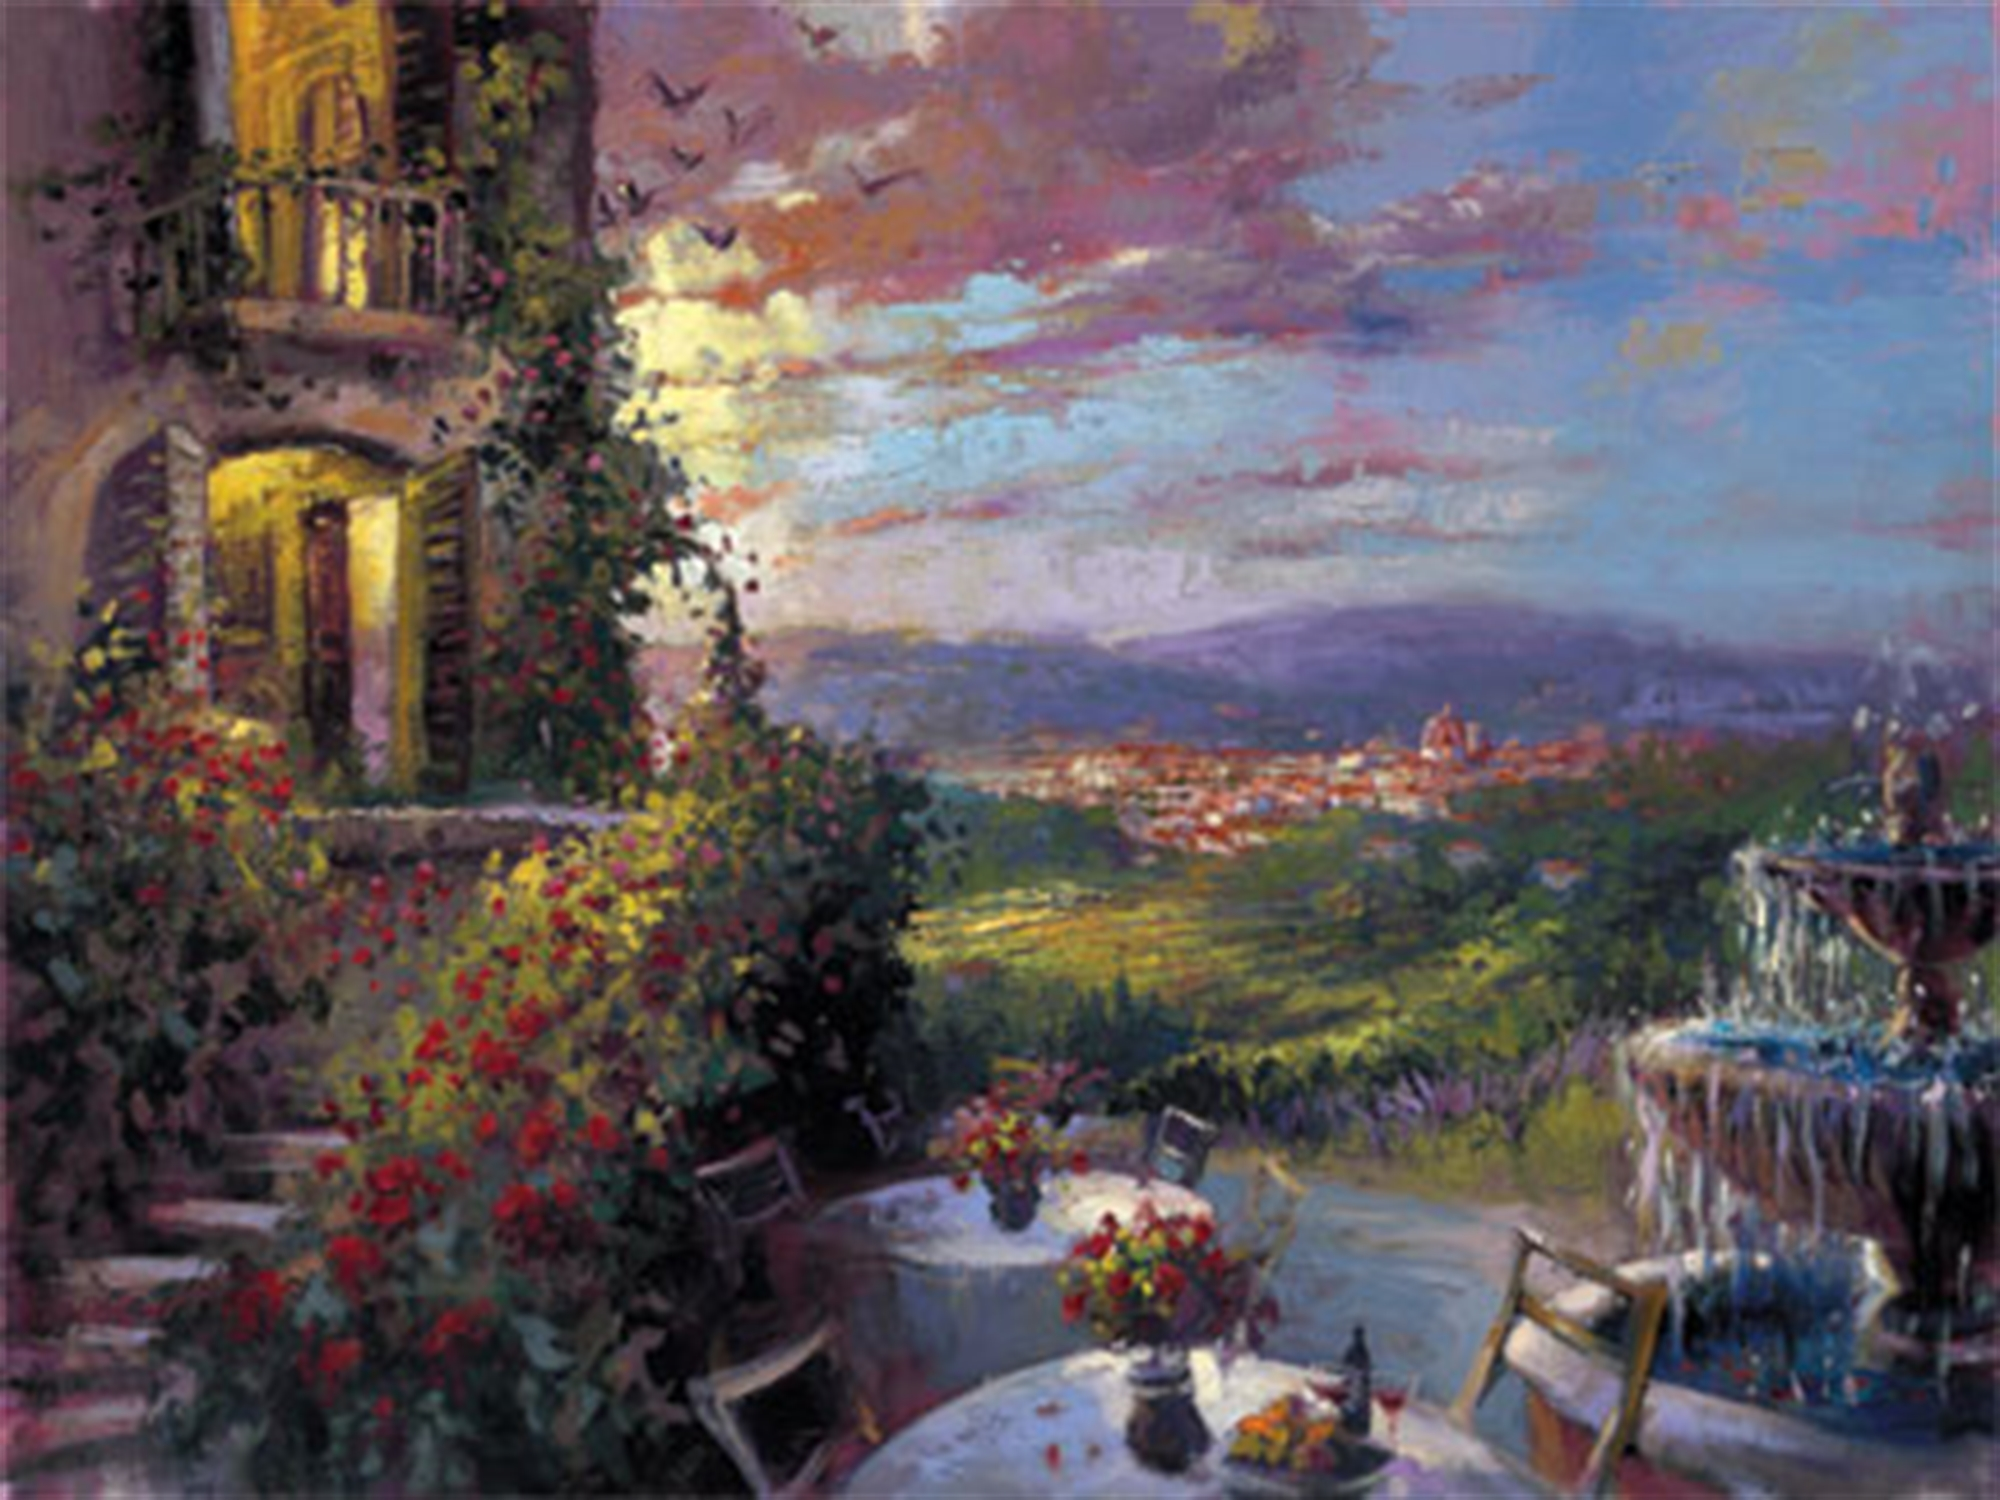 Passion of Florence by Steven Quartly